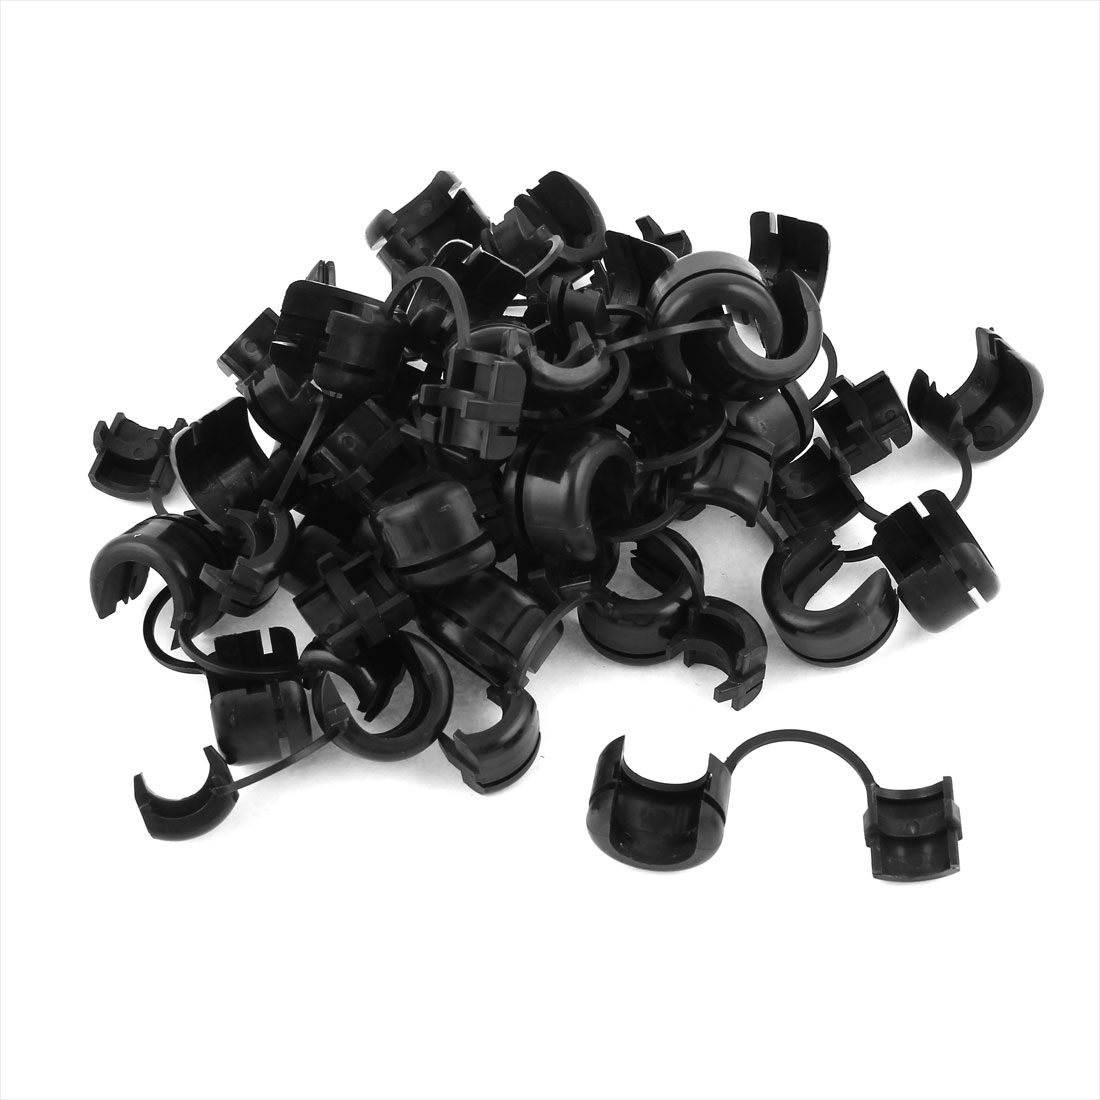 30 Pcs 12mm Dia Nylon Cable Cord Tie Fixed Clip Strain Relief Bushing